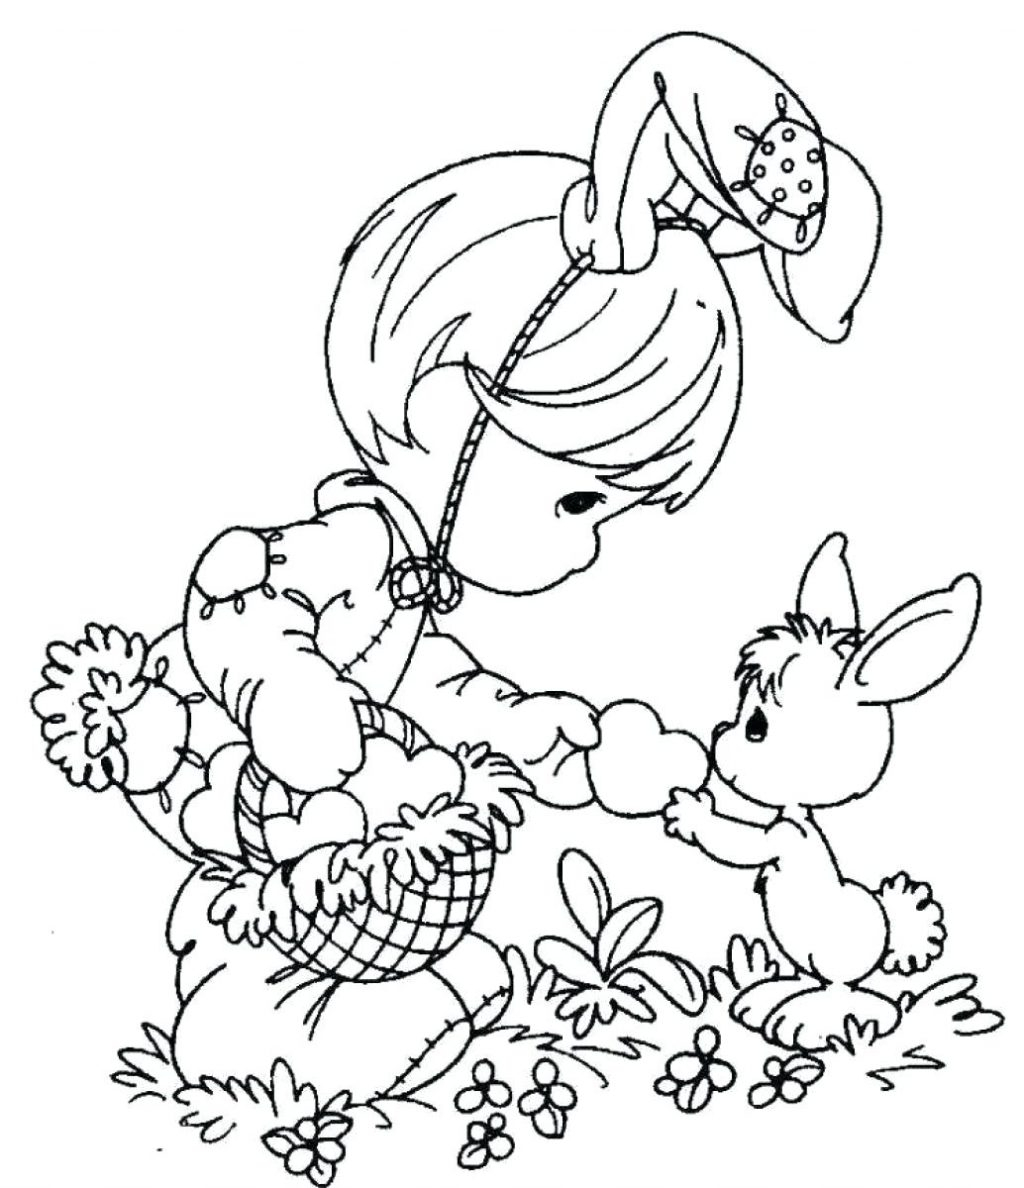 Easter Coloring Pages for School Download – Free Coloring Sheets